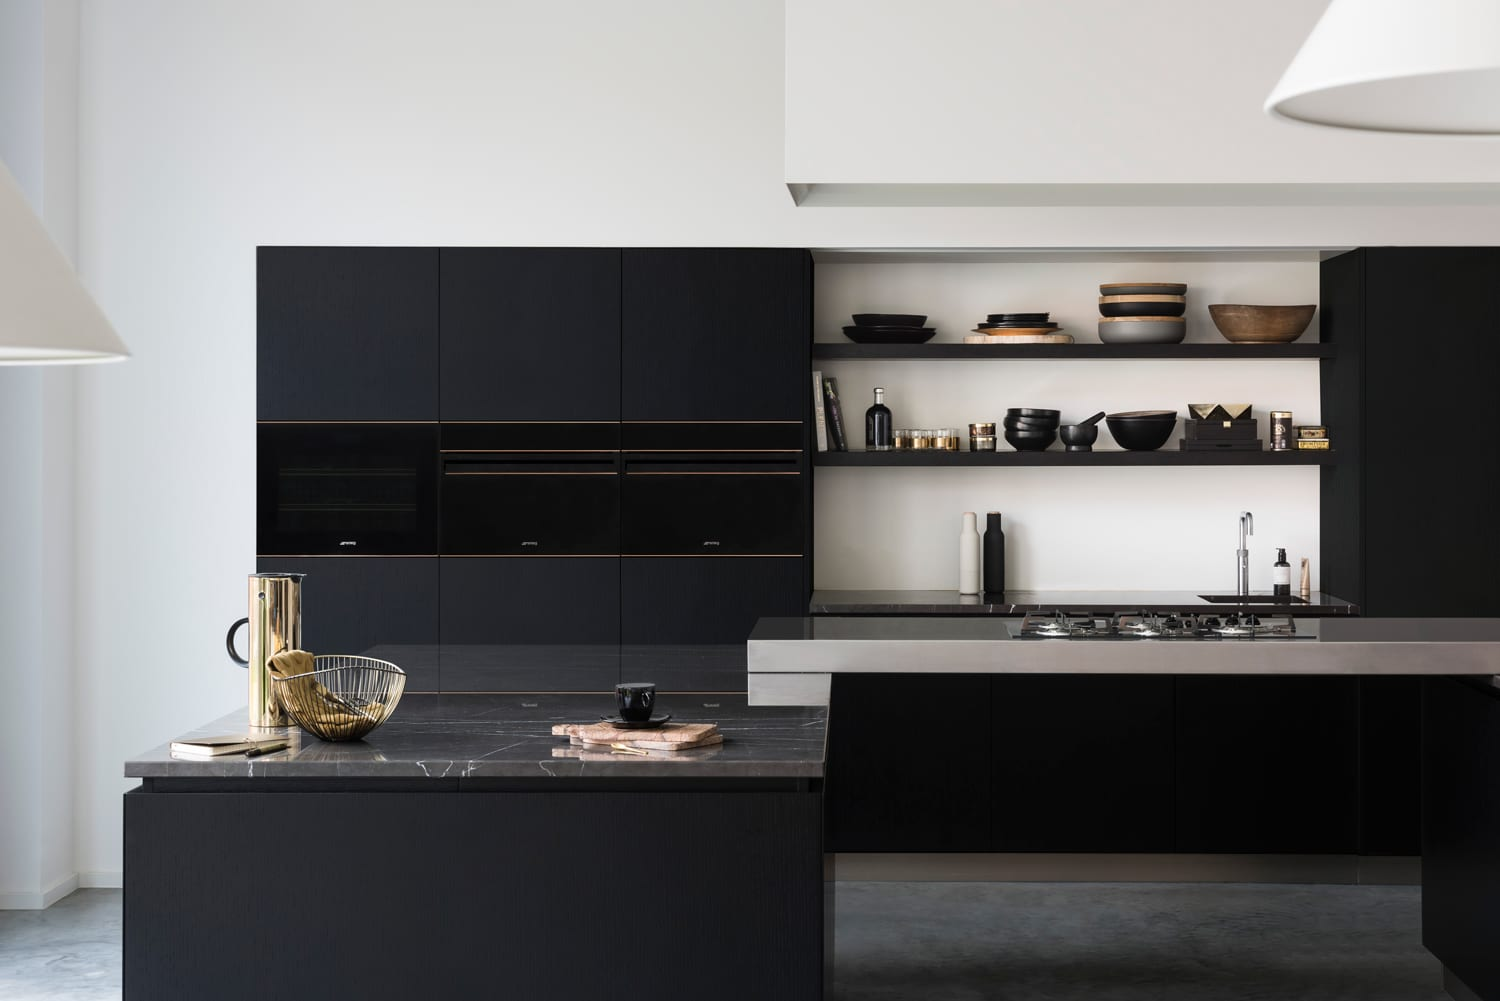 Dolce Stil Novo Luxury Appliance Collection by Guido Canali for Smeg | Yellowtrace